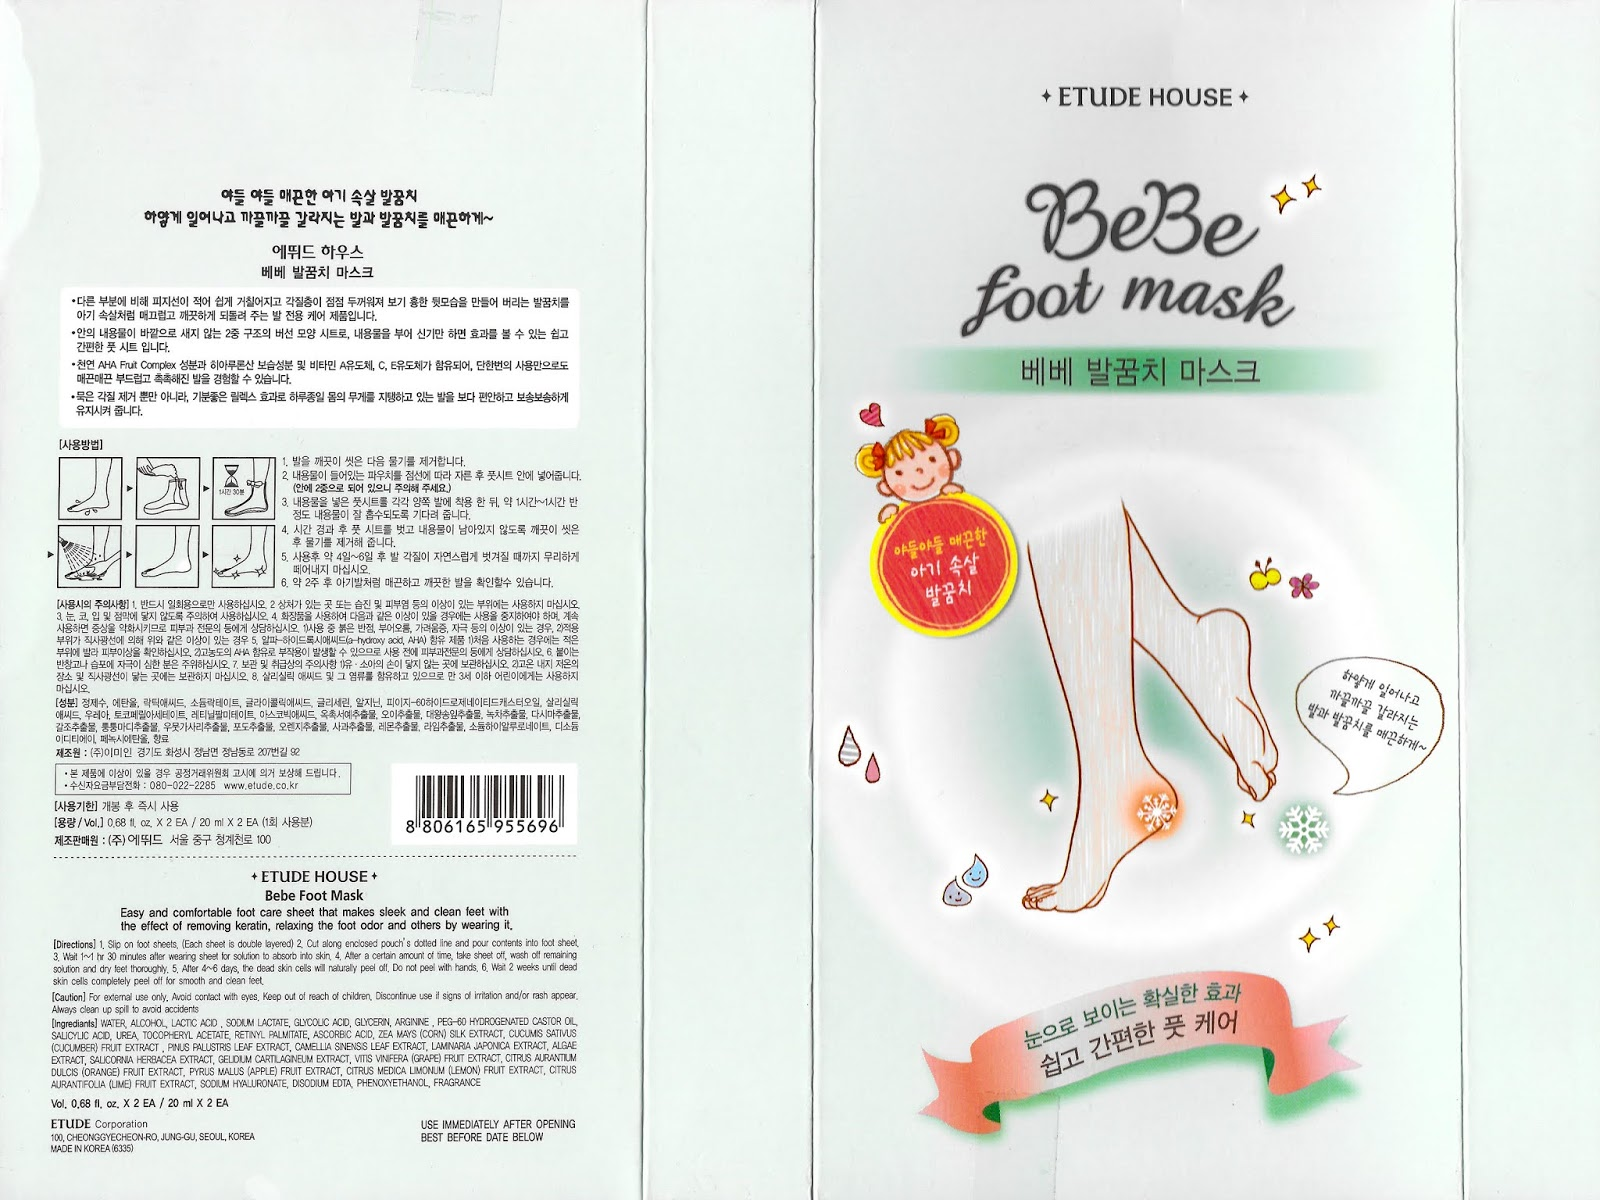 lavlilacs Etude House BeBe Foot Mask packaging - Korean and English ingredients, description, and directions